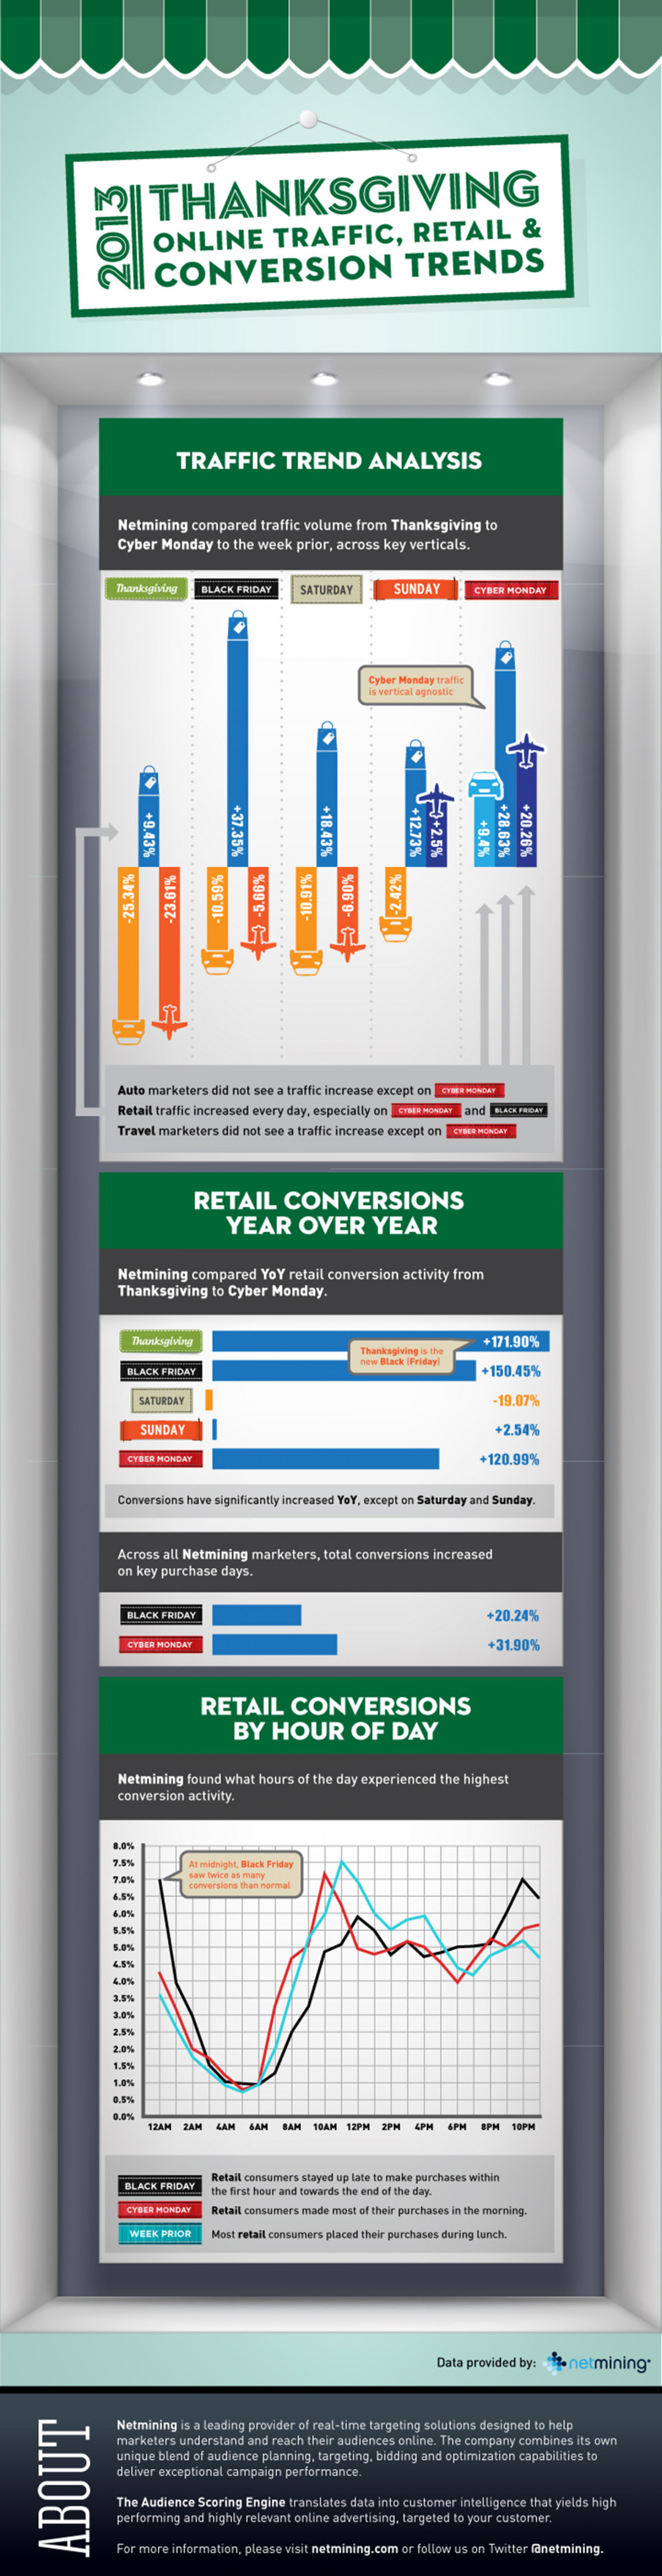 Netmining Thanksgiving Shopping Season 2013 Infographic